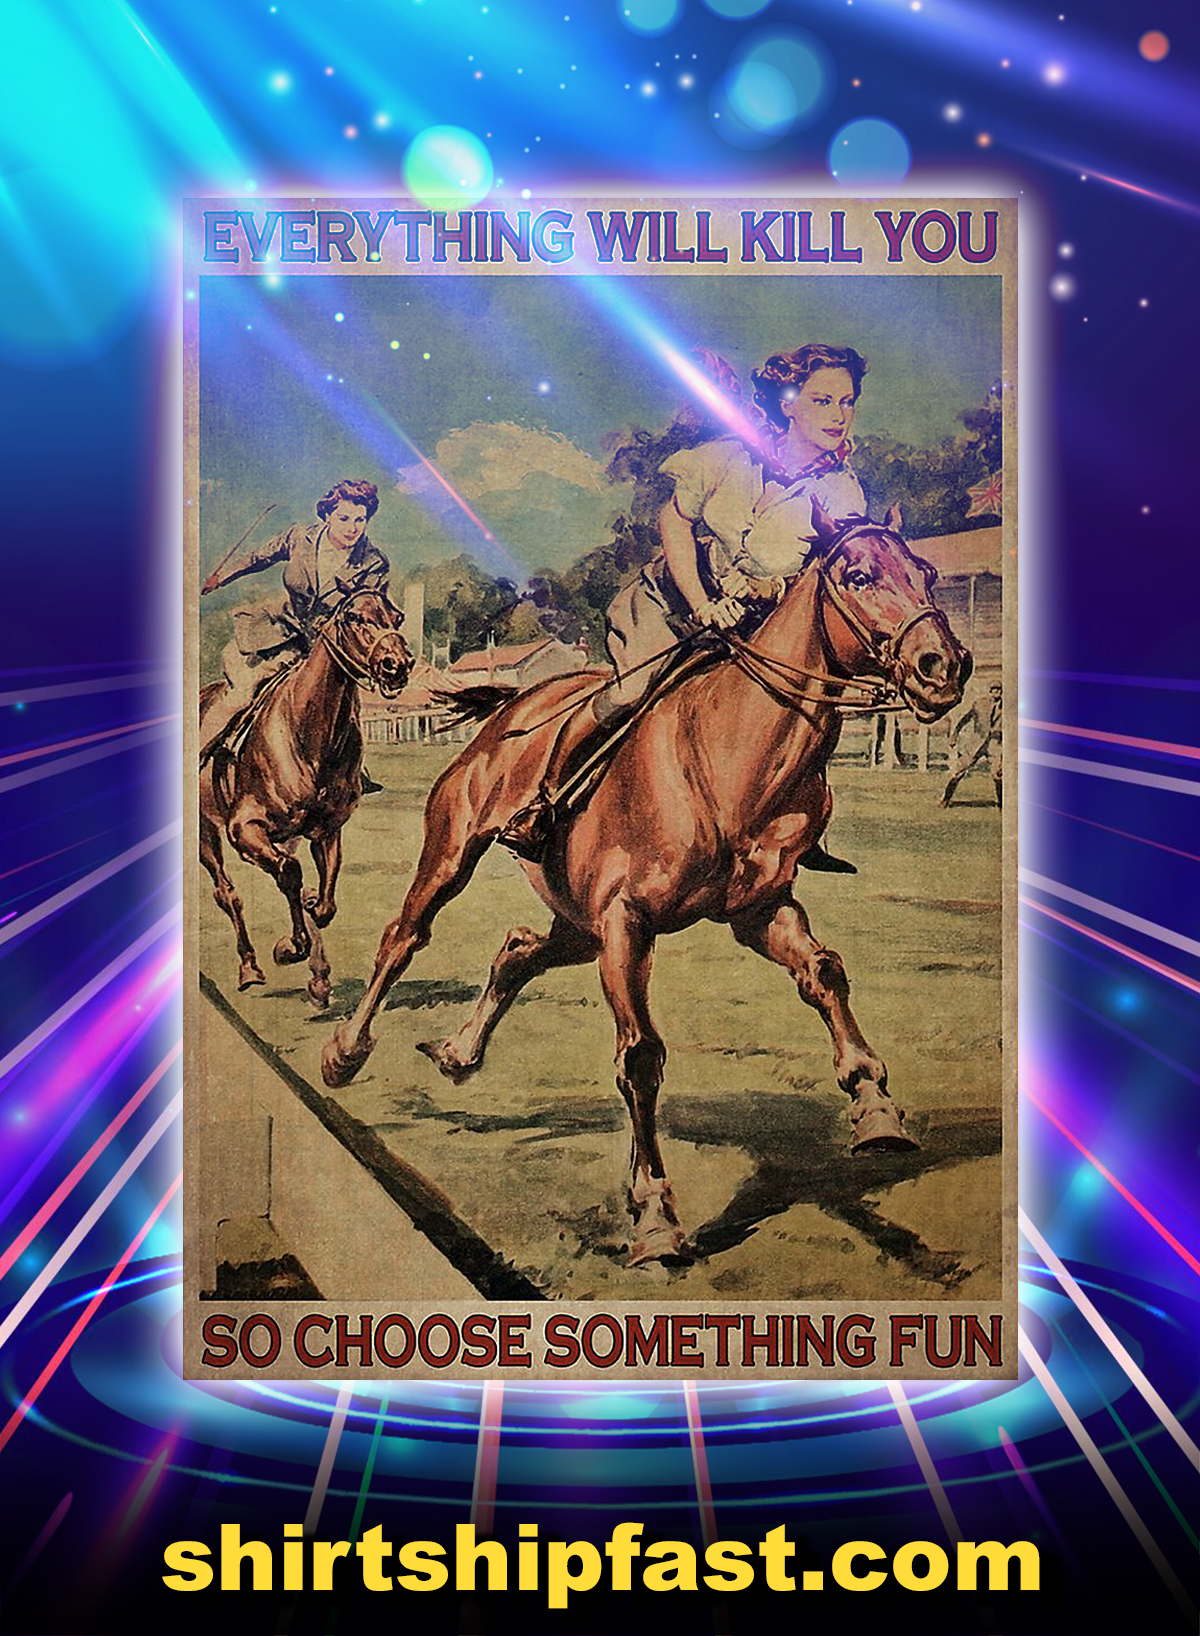 Female horse racing everything will kill you so choose something fun poster - A4